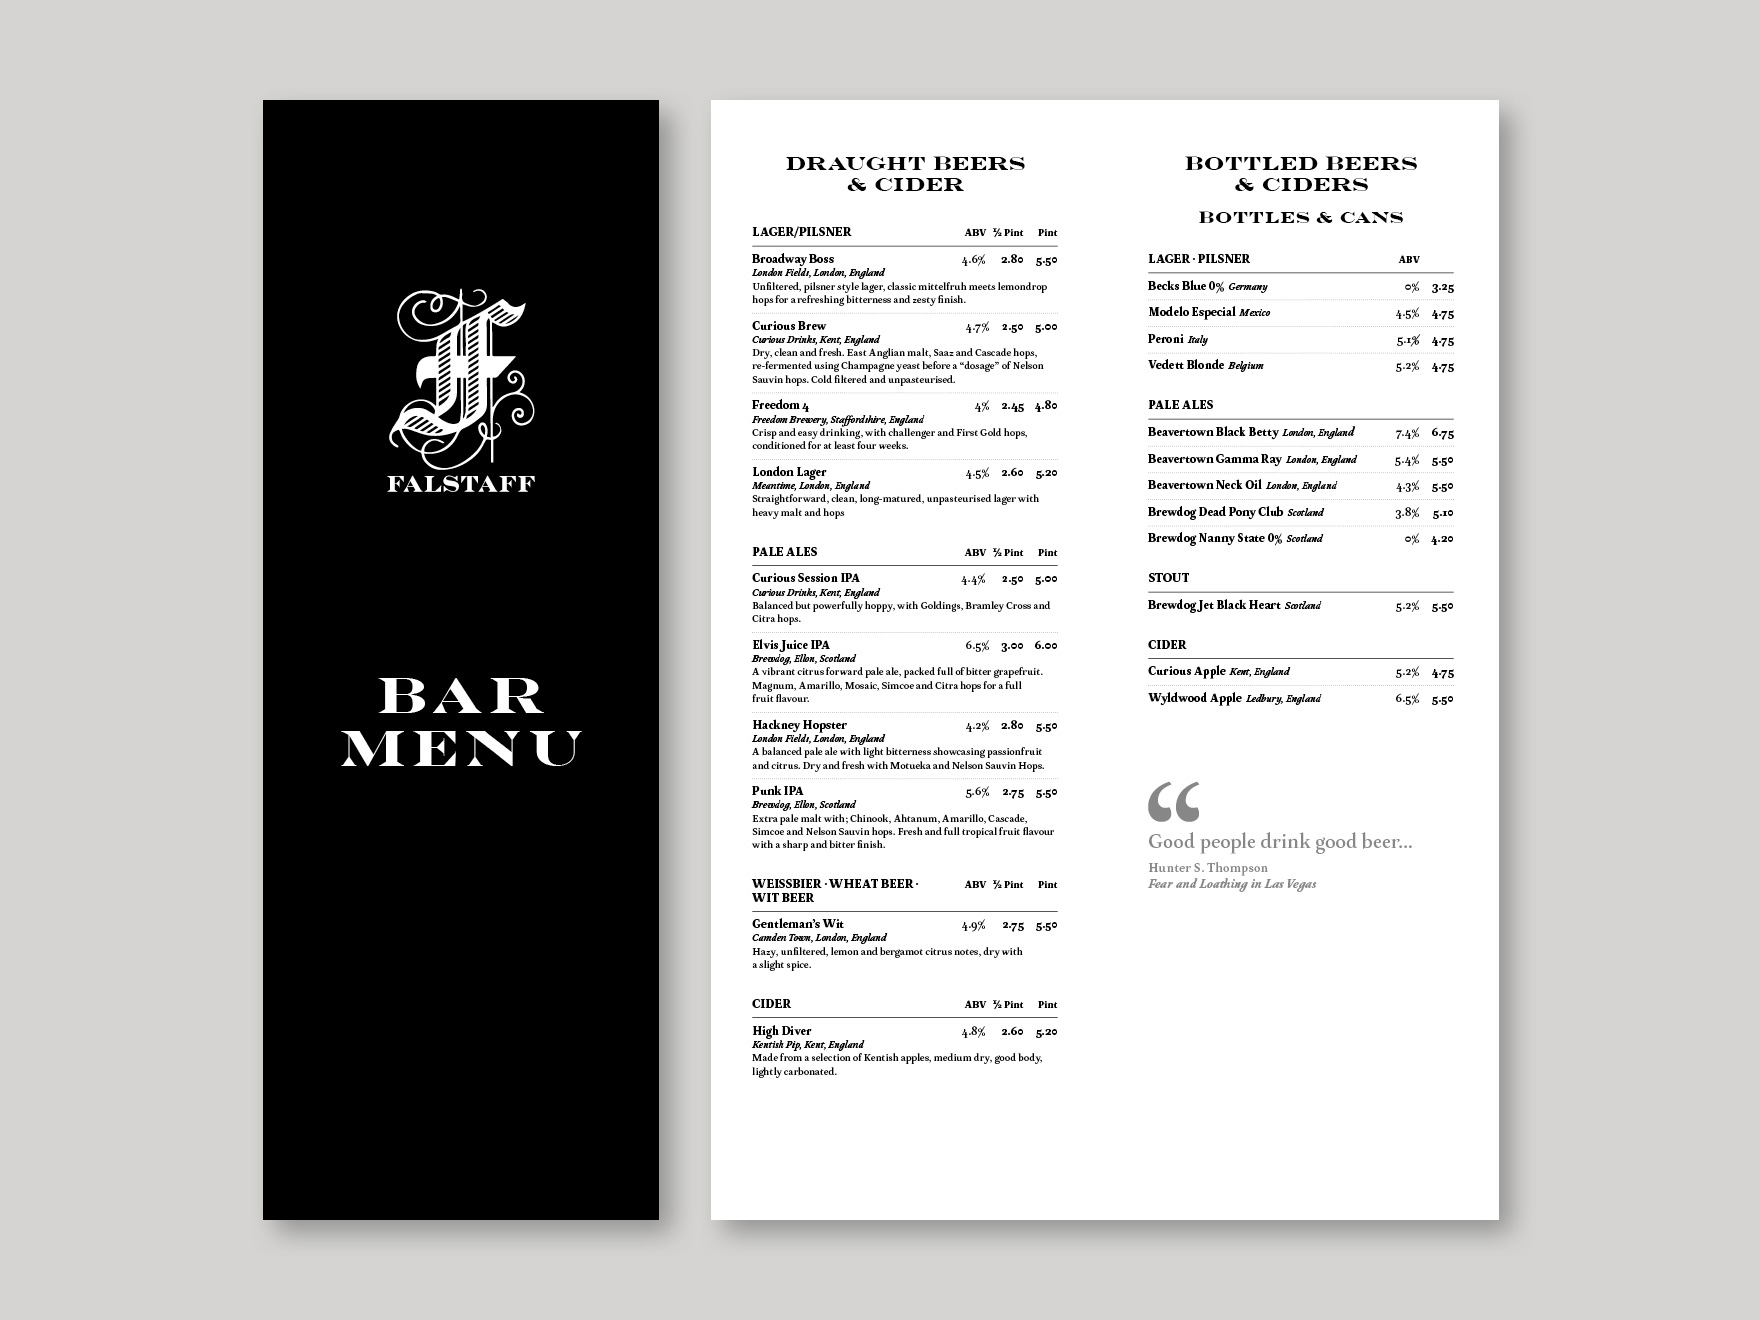 The front cover and an inside page of the bar menu listing beers and ciders for the Falstaff Hotel